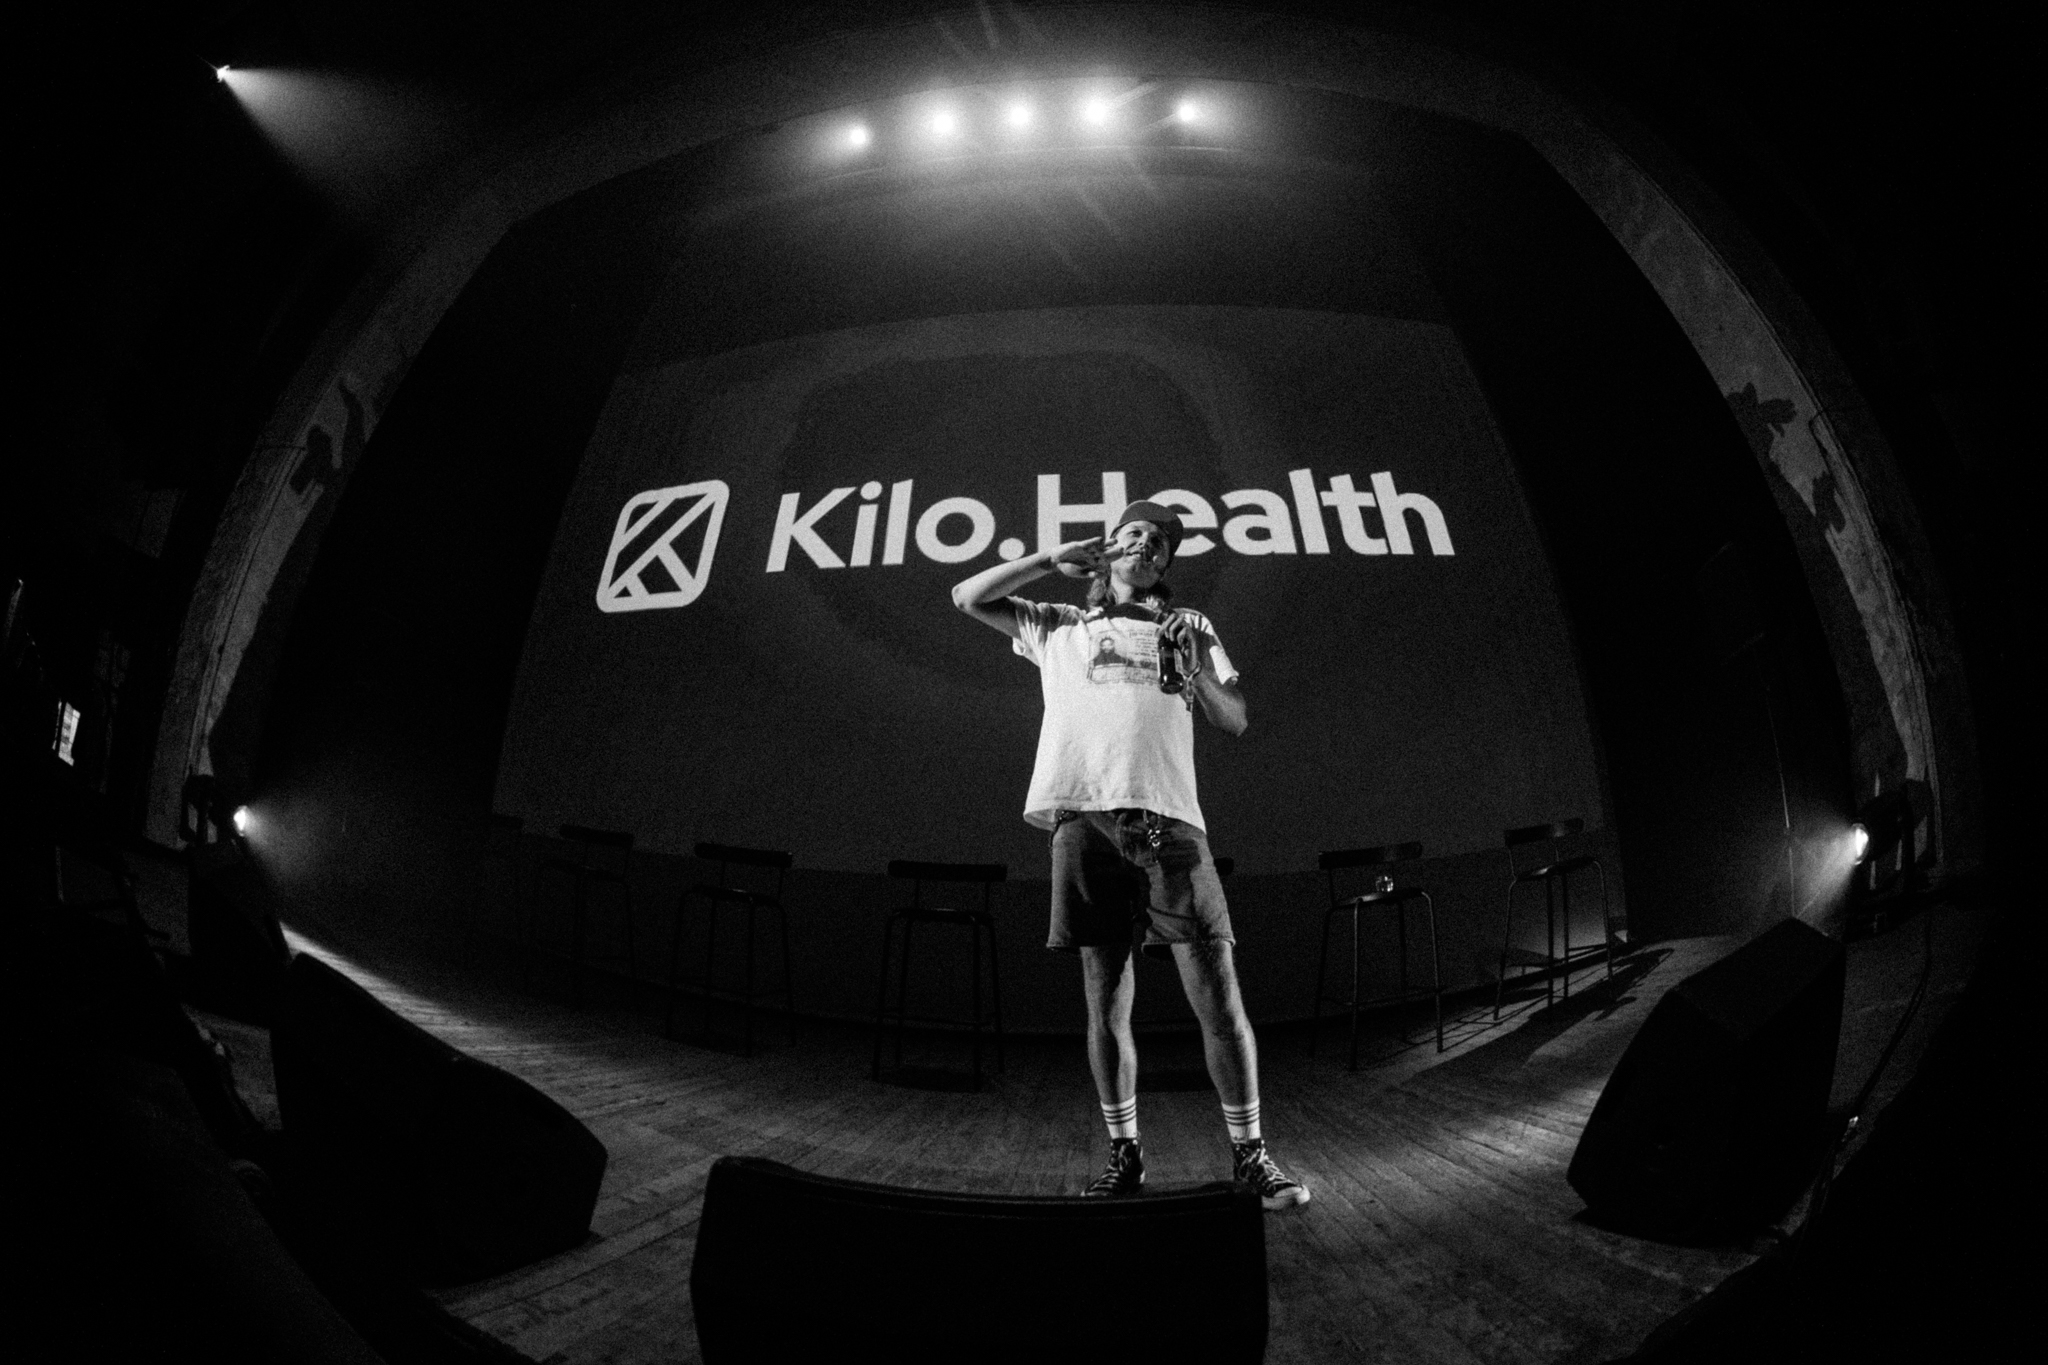 Short on talent? Take a page from Kilo Health's HR playbook